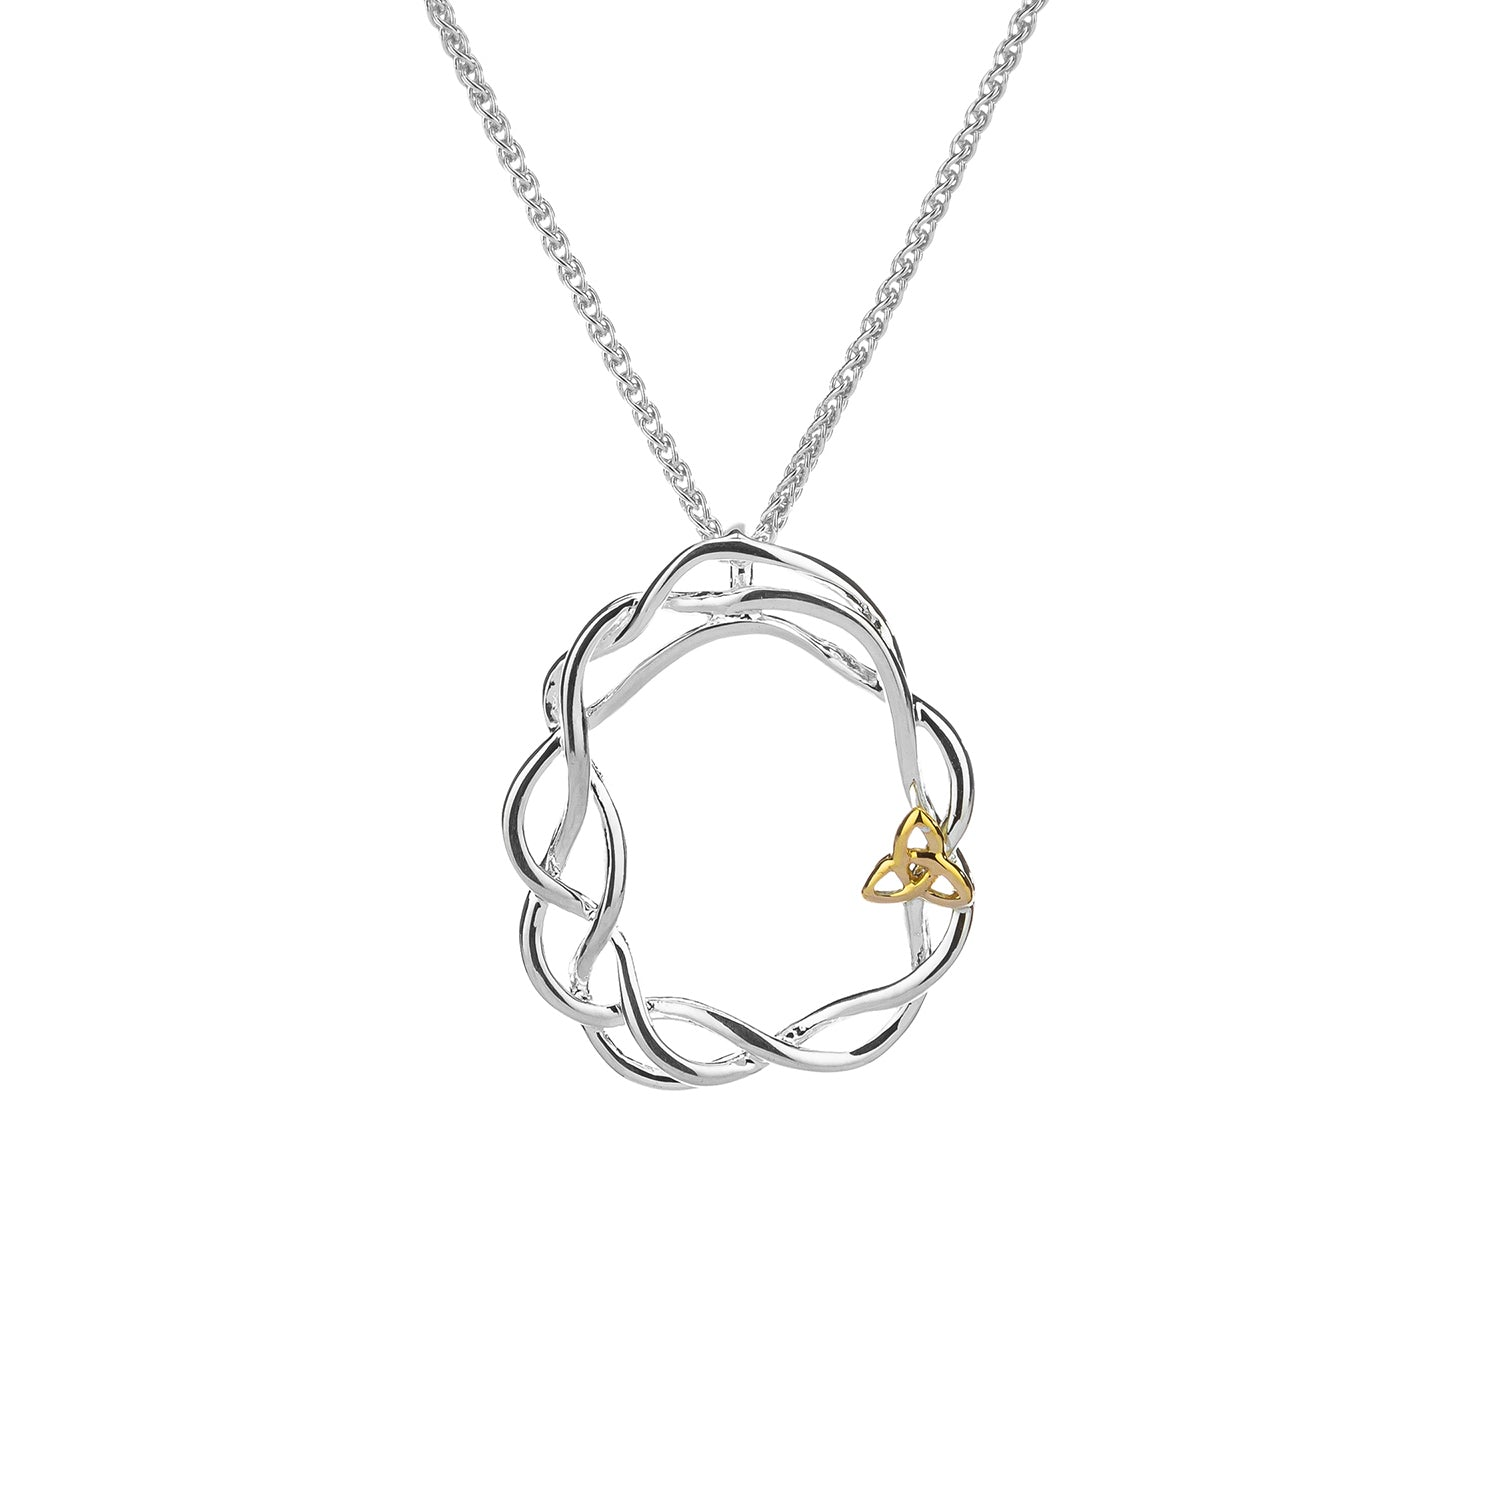 Pendant 10k Infinity Knot Pendant from welch and company jewelers near syracuse ny